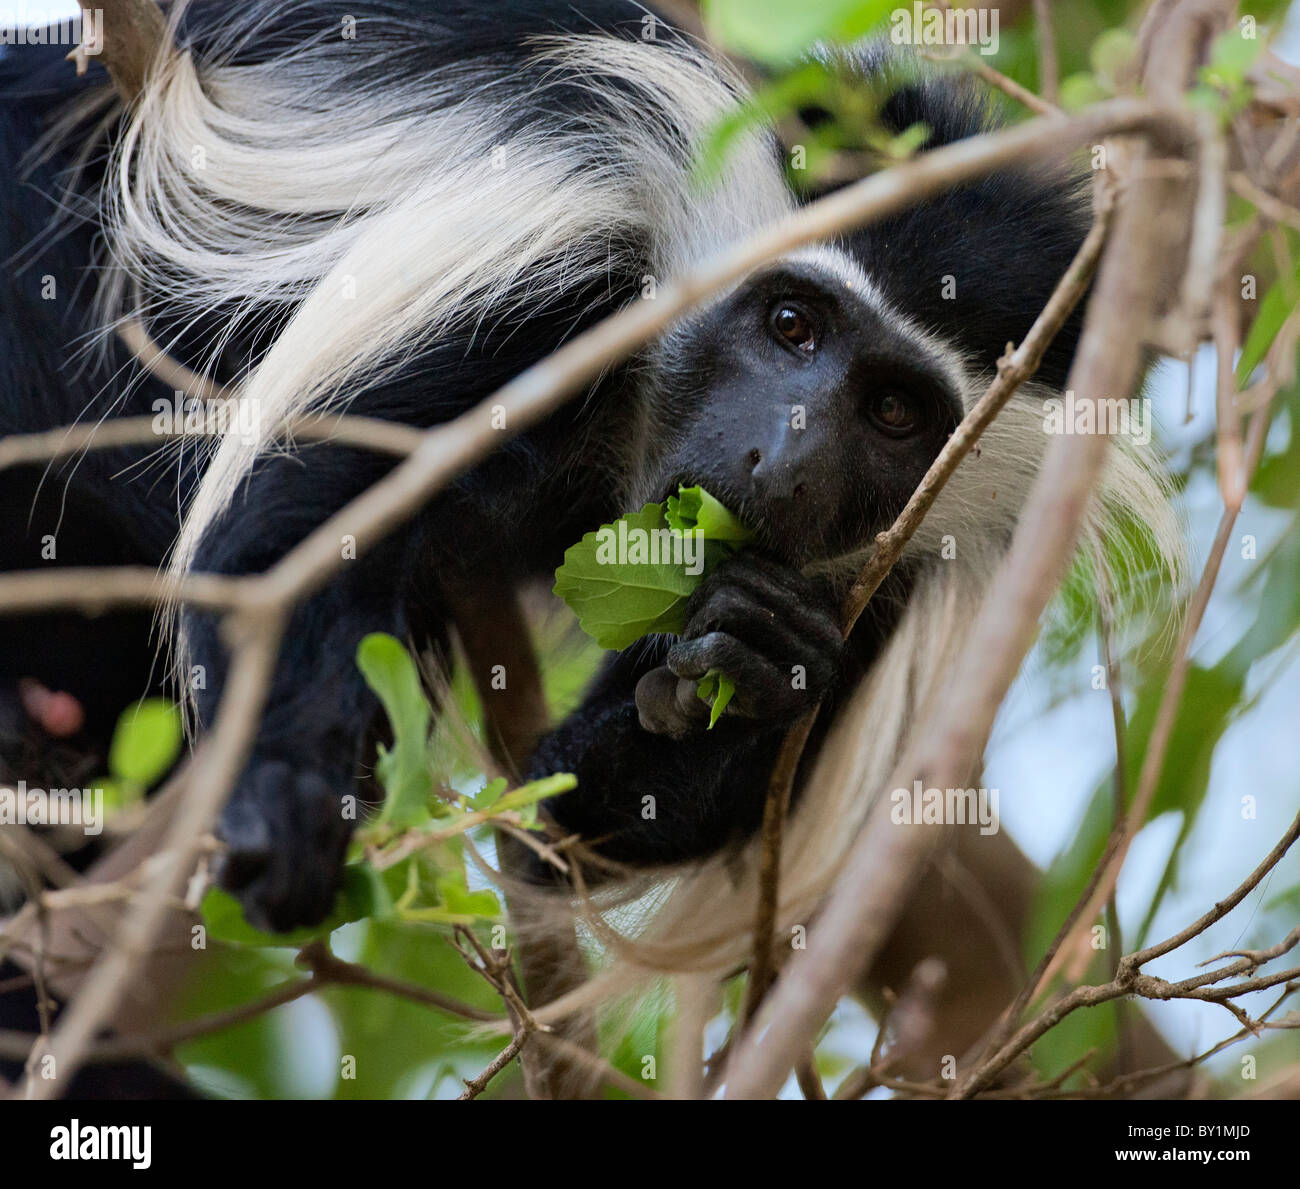 An Angola Pied Colobus feeding on leaves in Selous Game Reserve. - Stock Image